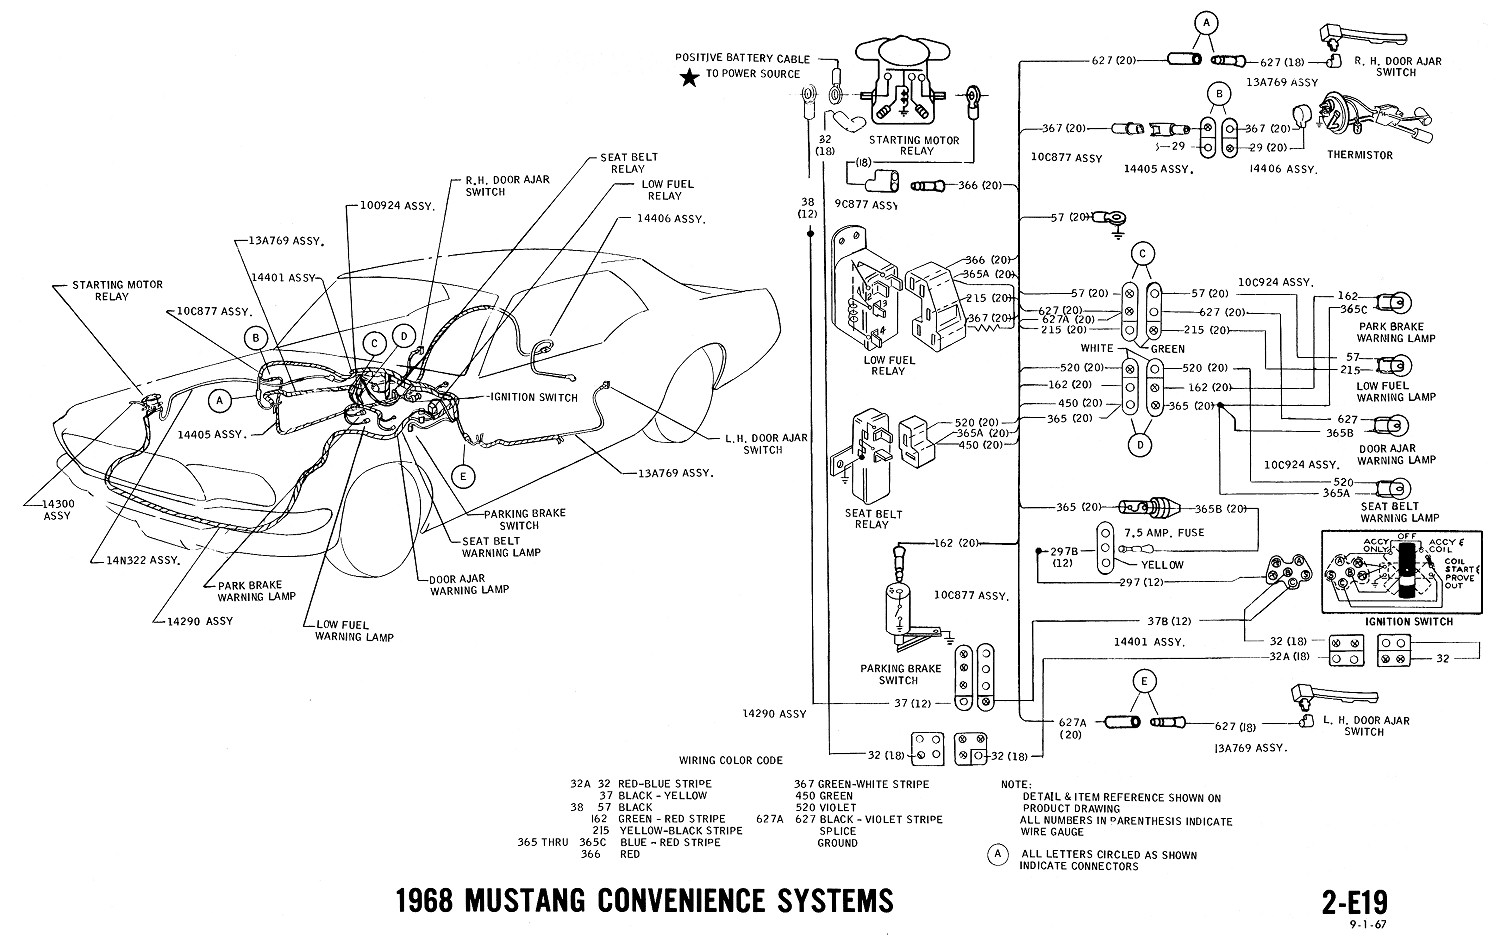 1968 Mustang Wiring Diagrams Evolving Software Light Switch On Diagram Uk Reviews And Master Neutral E20 Convenience Systems